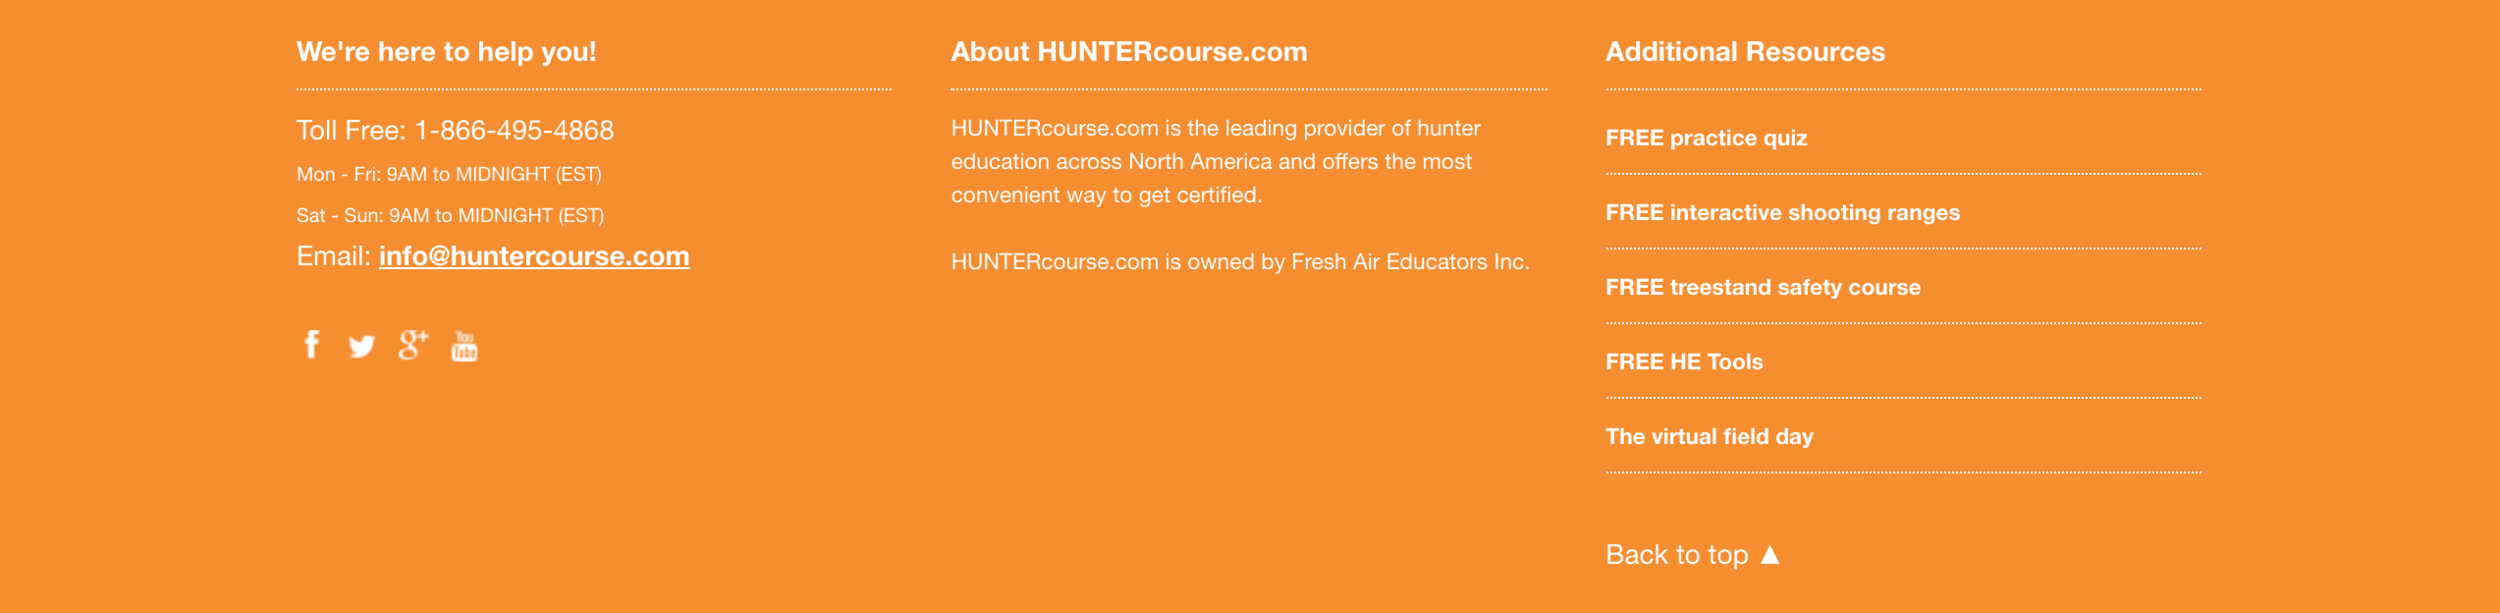 Resource page on huntercourse.com near the bottom of the website